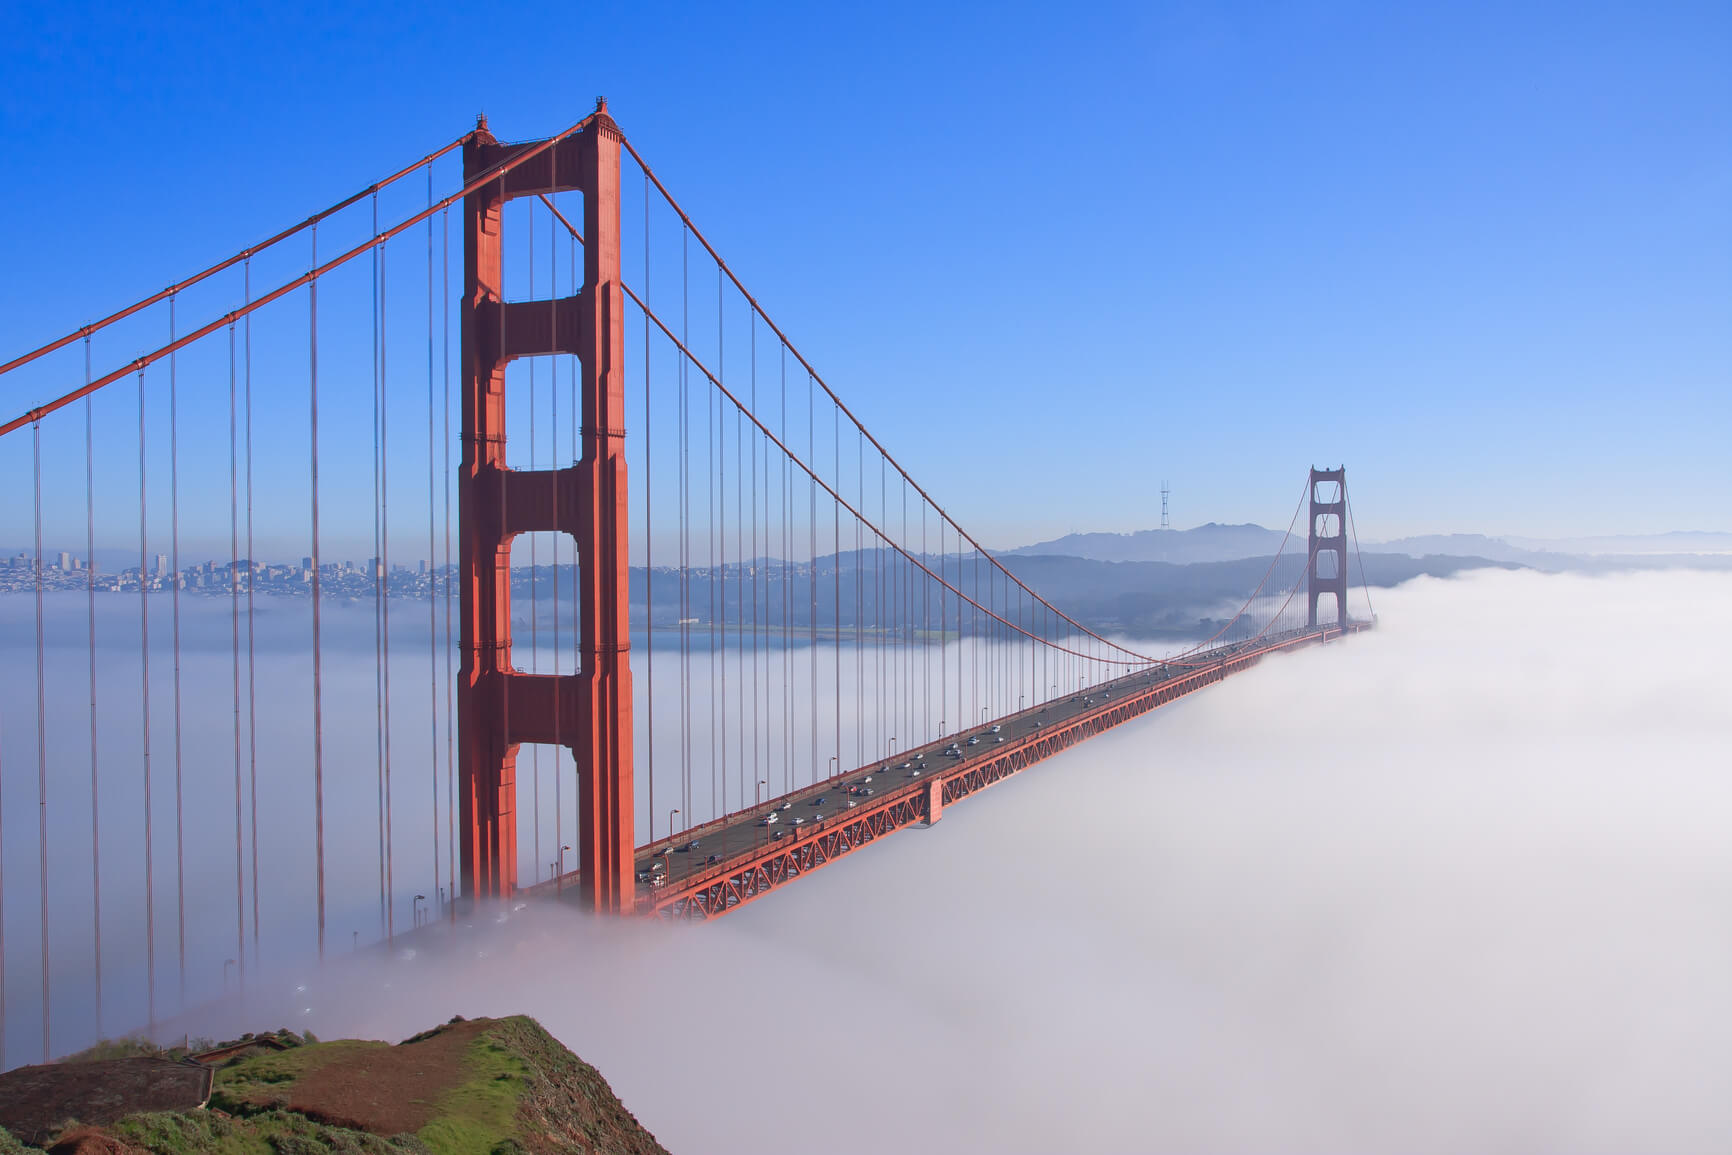 Montreal, Canada to San Francisco, USA for only $255 CAD roundtrip